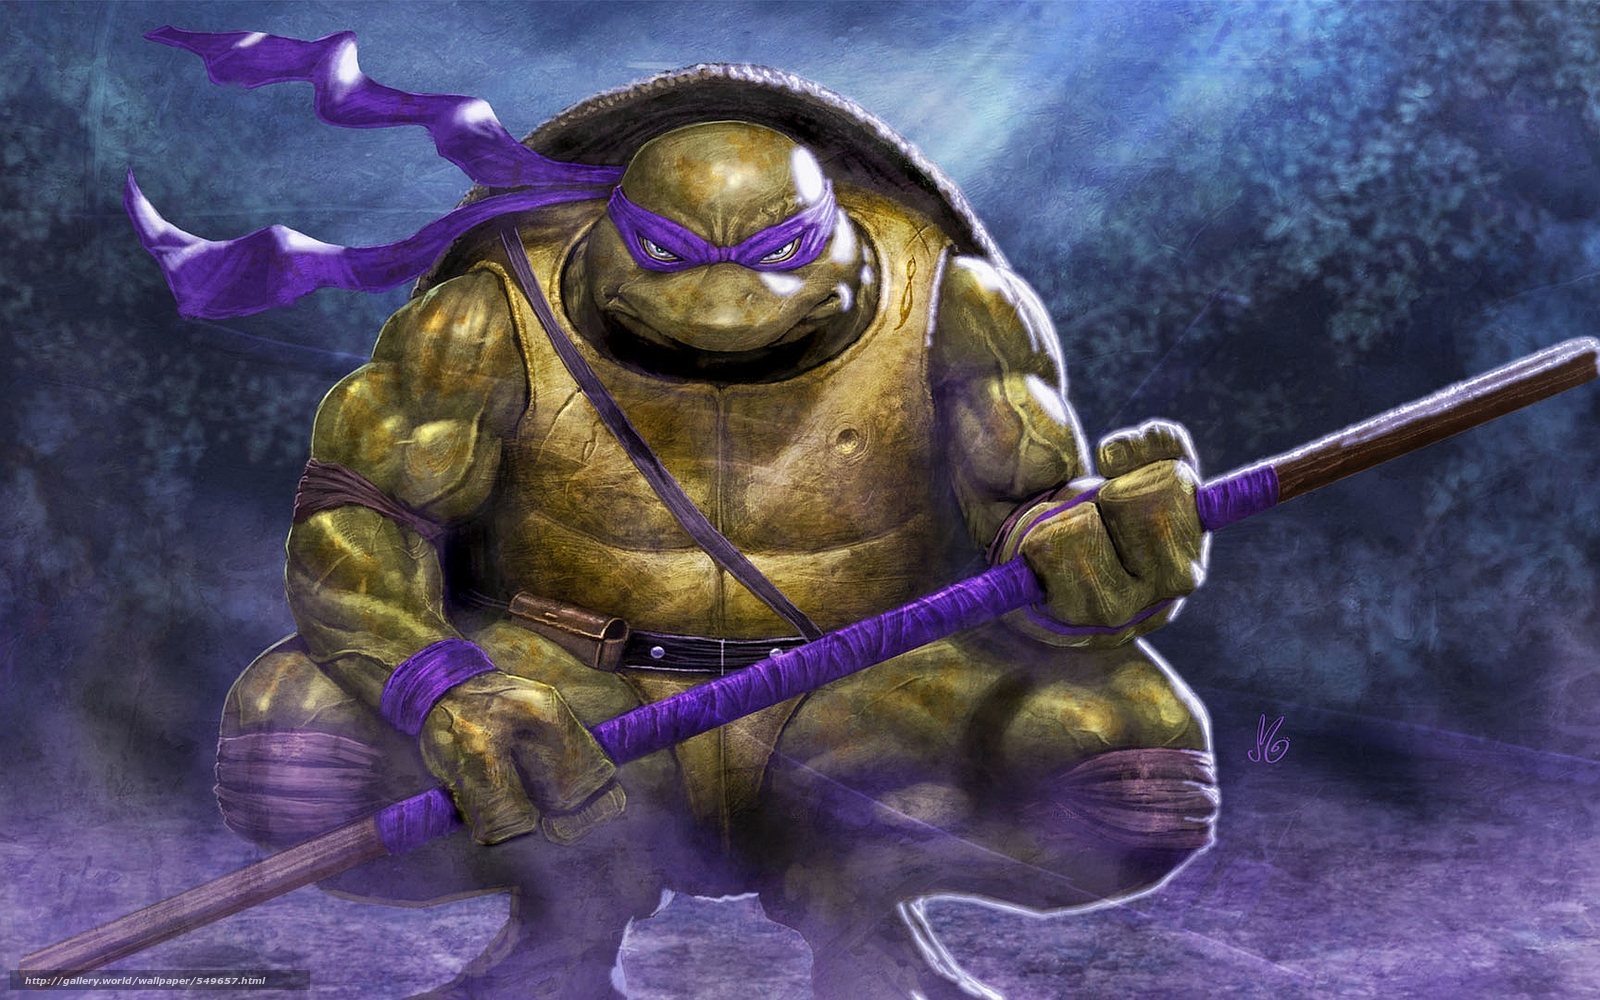 Tlcharger fond d 39 ecran donatello art tortues ninja - Tortues ninja donatello ...